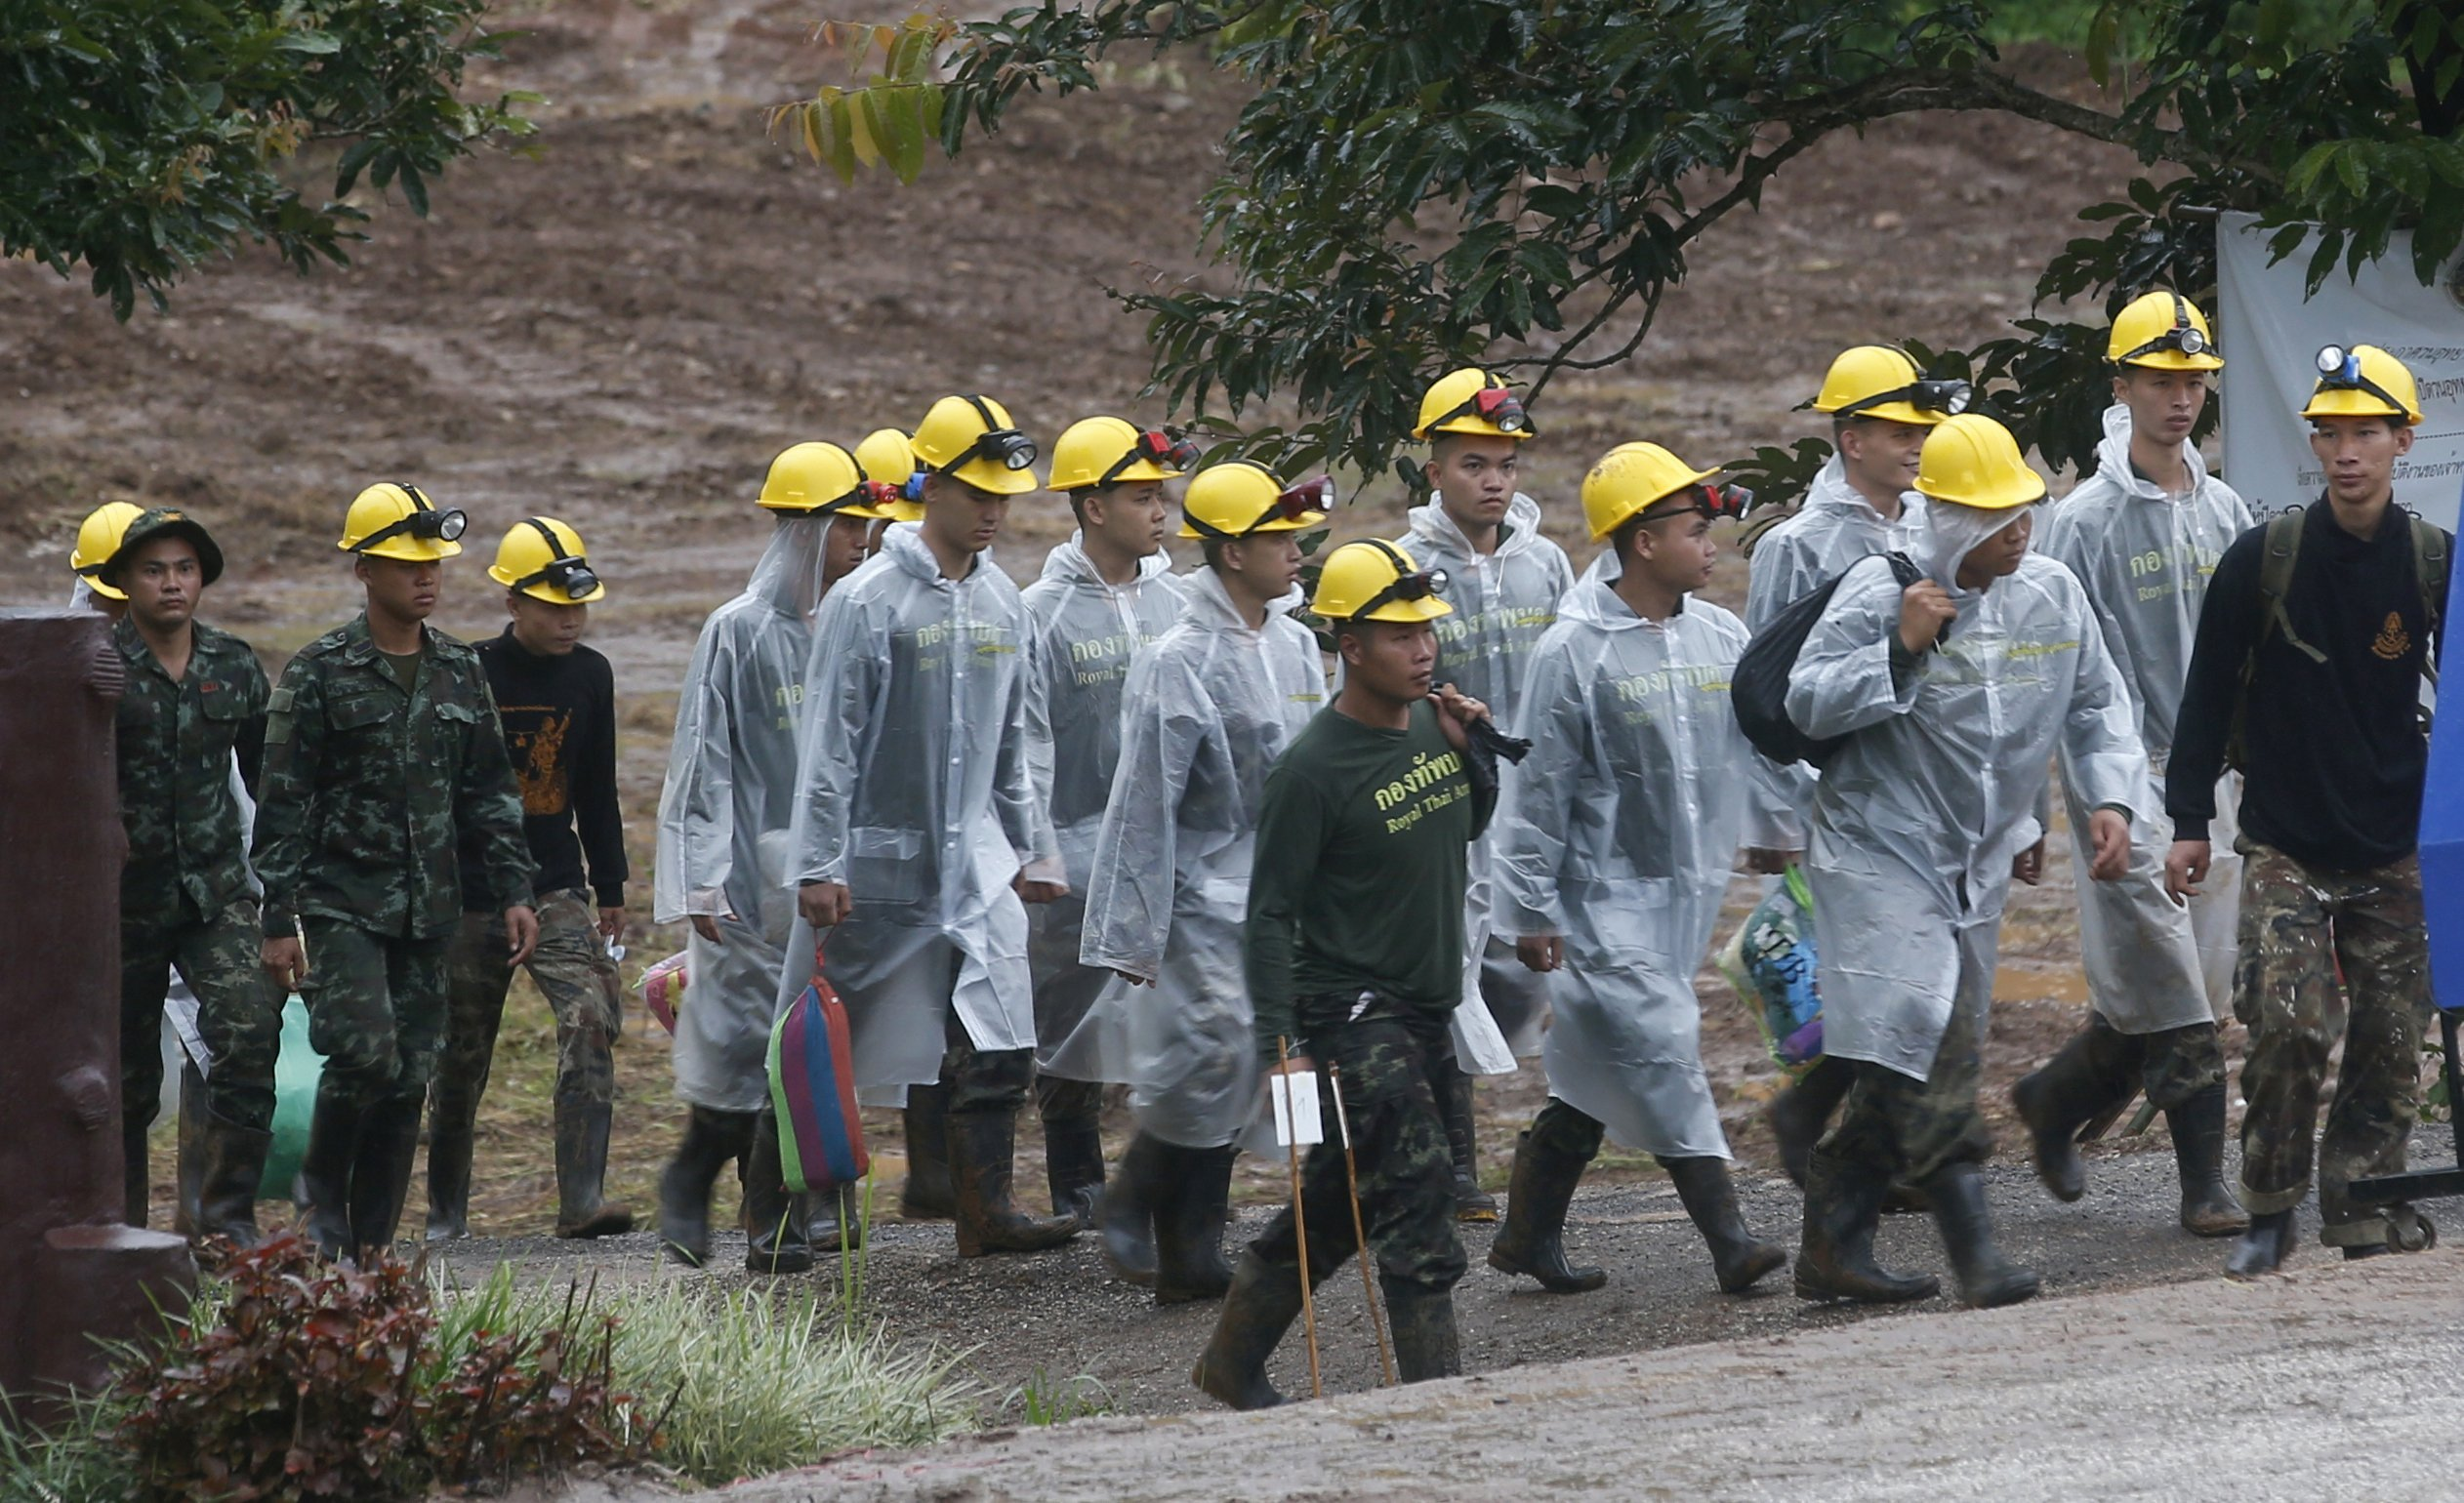 Thai boys were passed 'sleeping' through cave, says diver